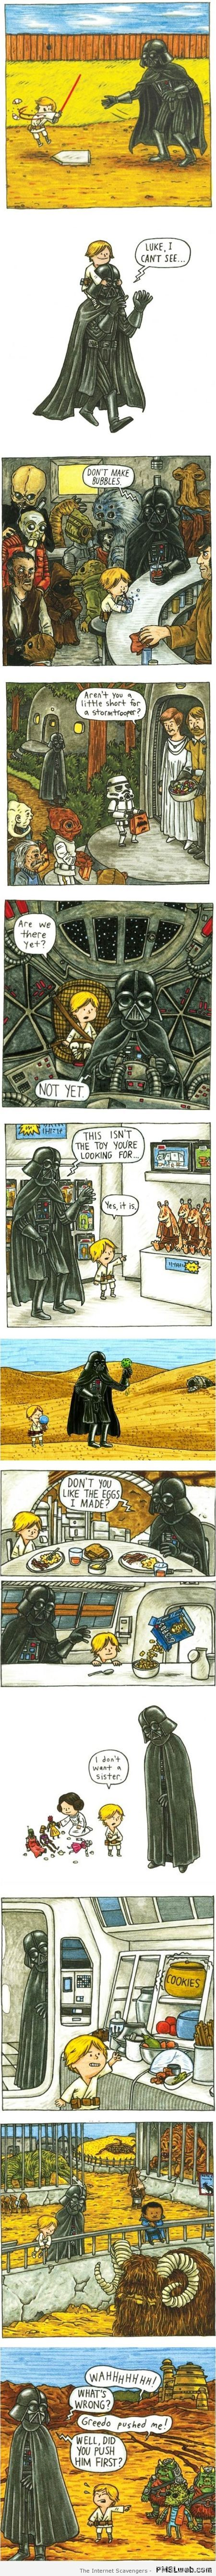 Funny darth vader parenting at PMSLweb.com